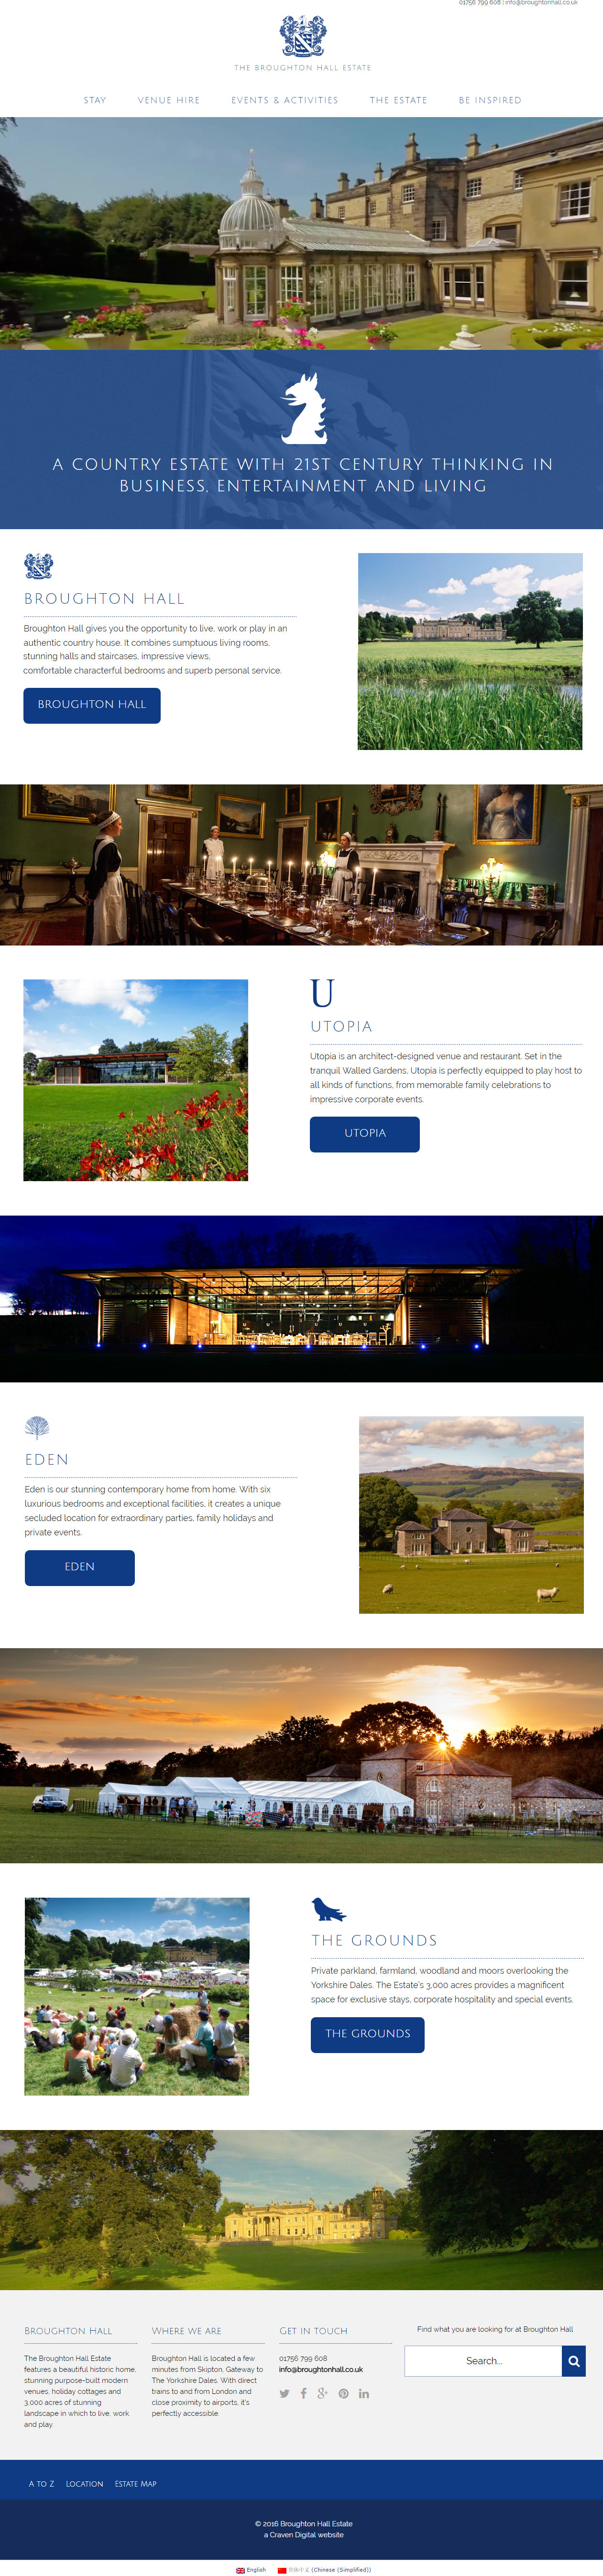 broughton-hall-website-homepage